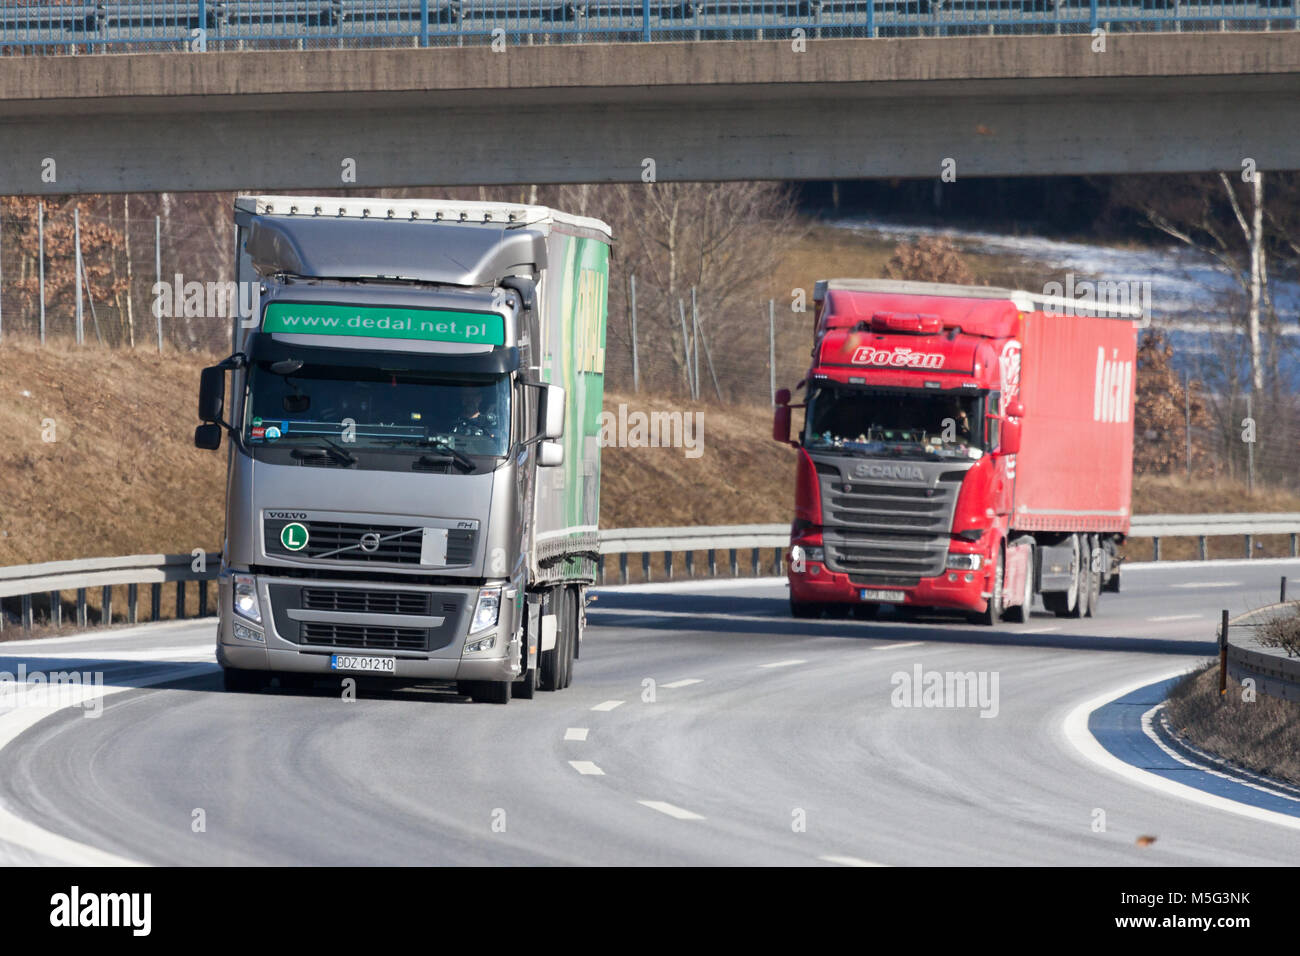 FUERTH / GERMANY - FEBRUARY 22, 2018: truck from a czech forwarder drives on german motorway Stock Photo